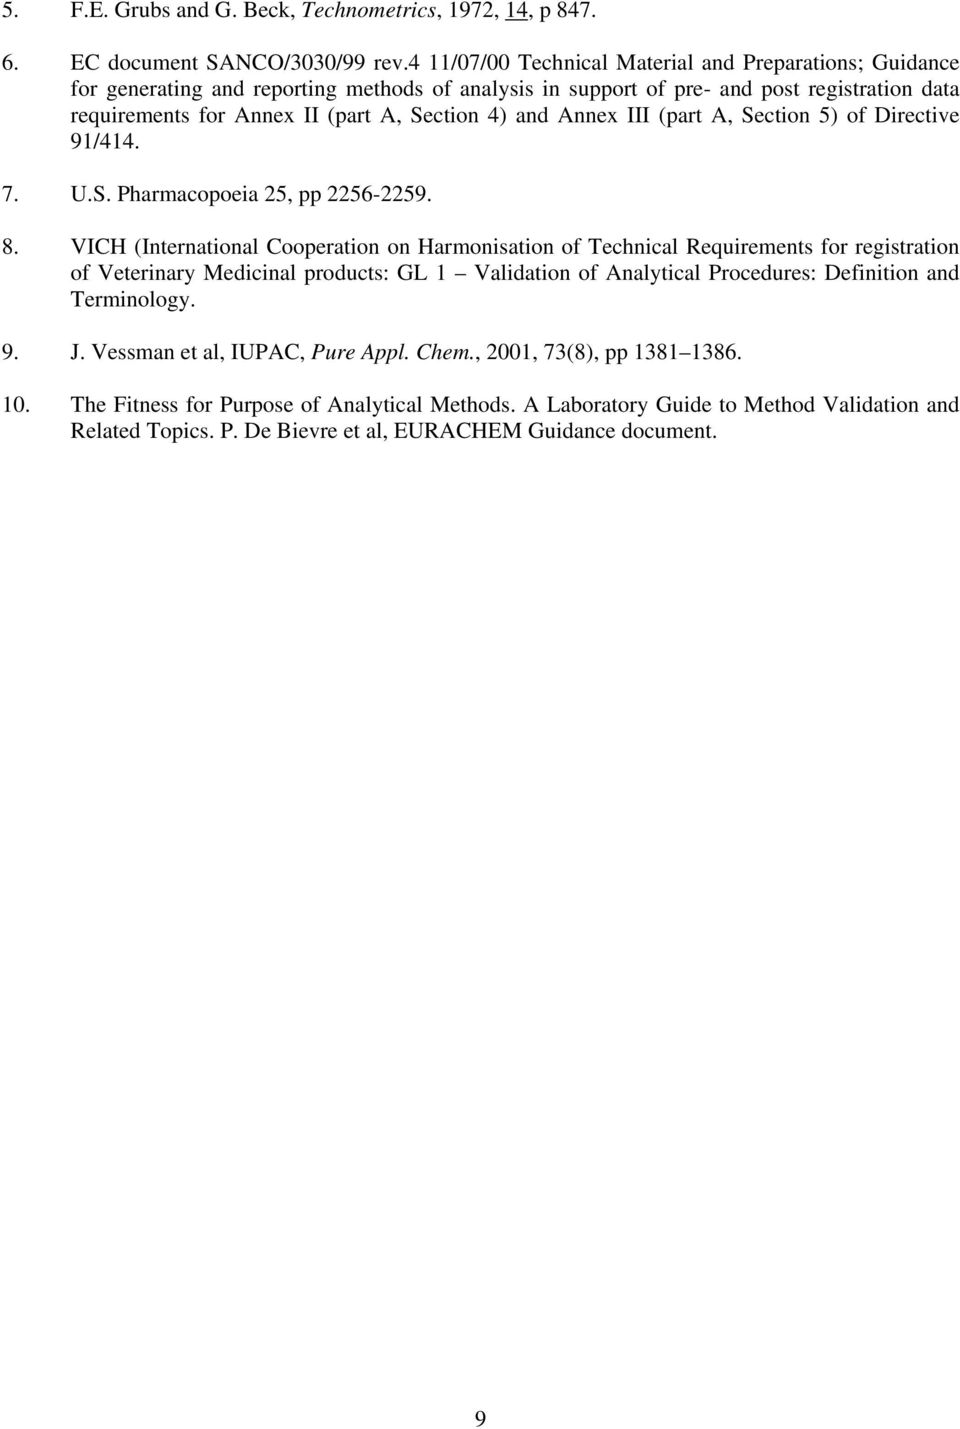 and Annex III (part A, Section 5) of Directive 91/414. 7. U.S. Pharmacopoeia 25, pp 2256-2259. 8.